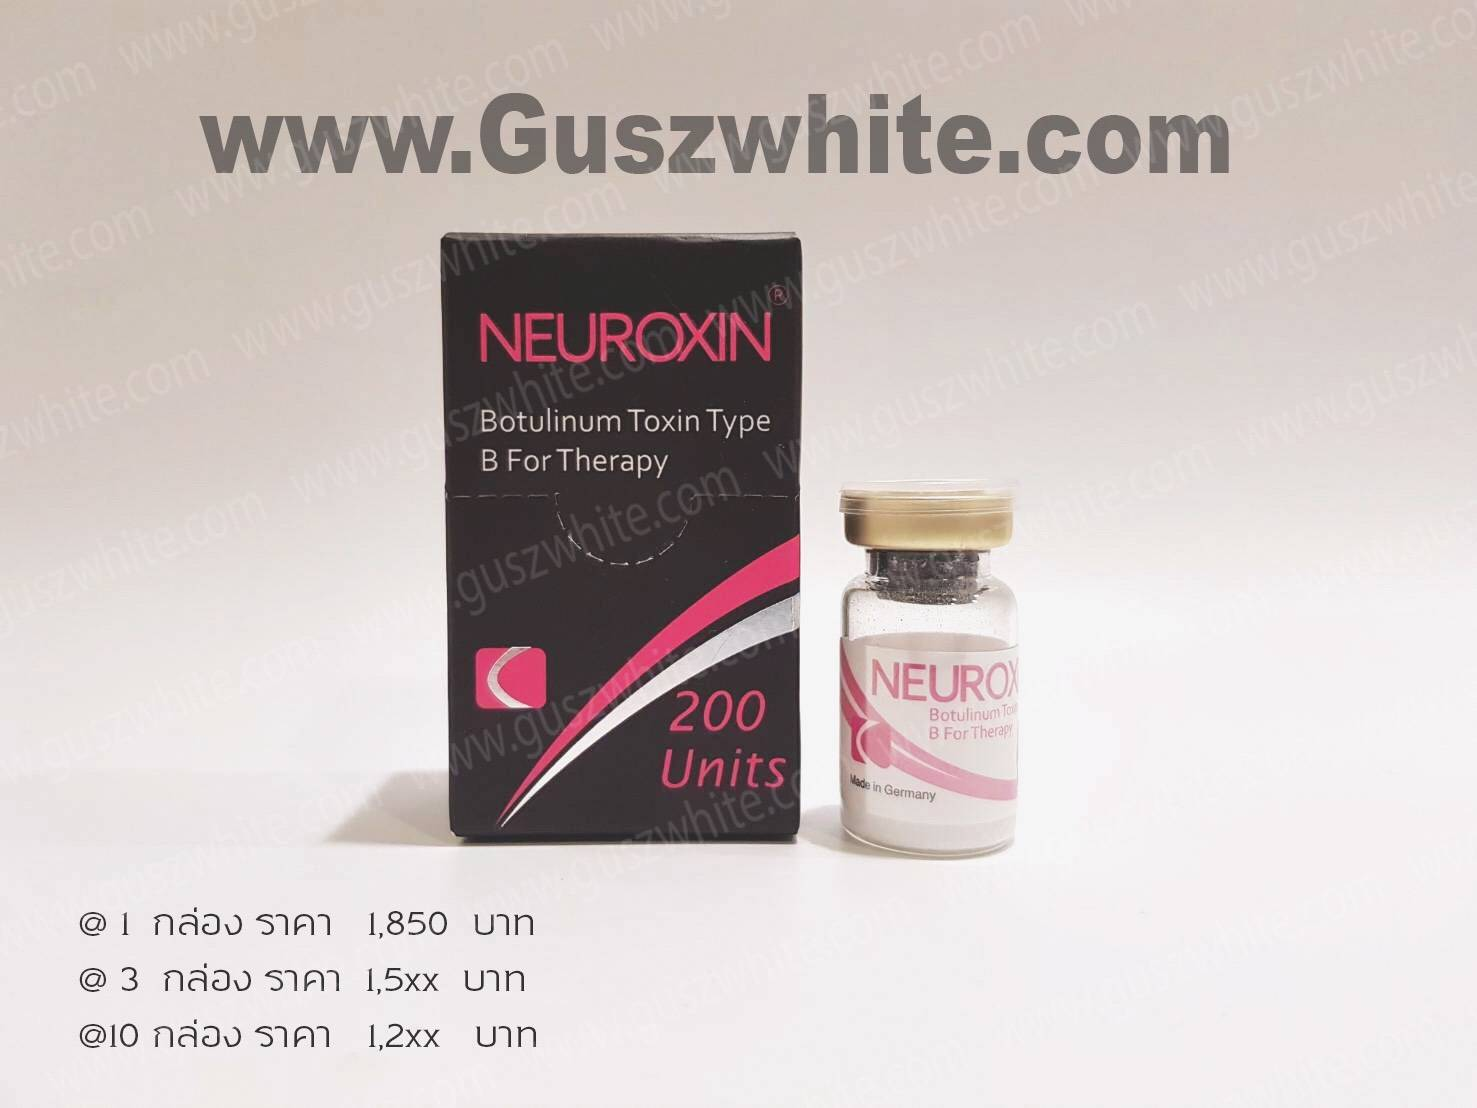 Neuroxin 200 Unit